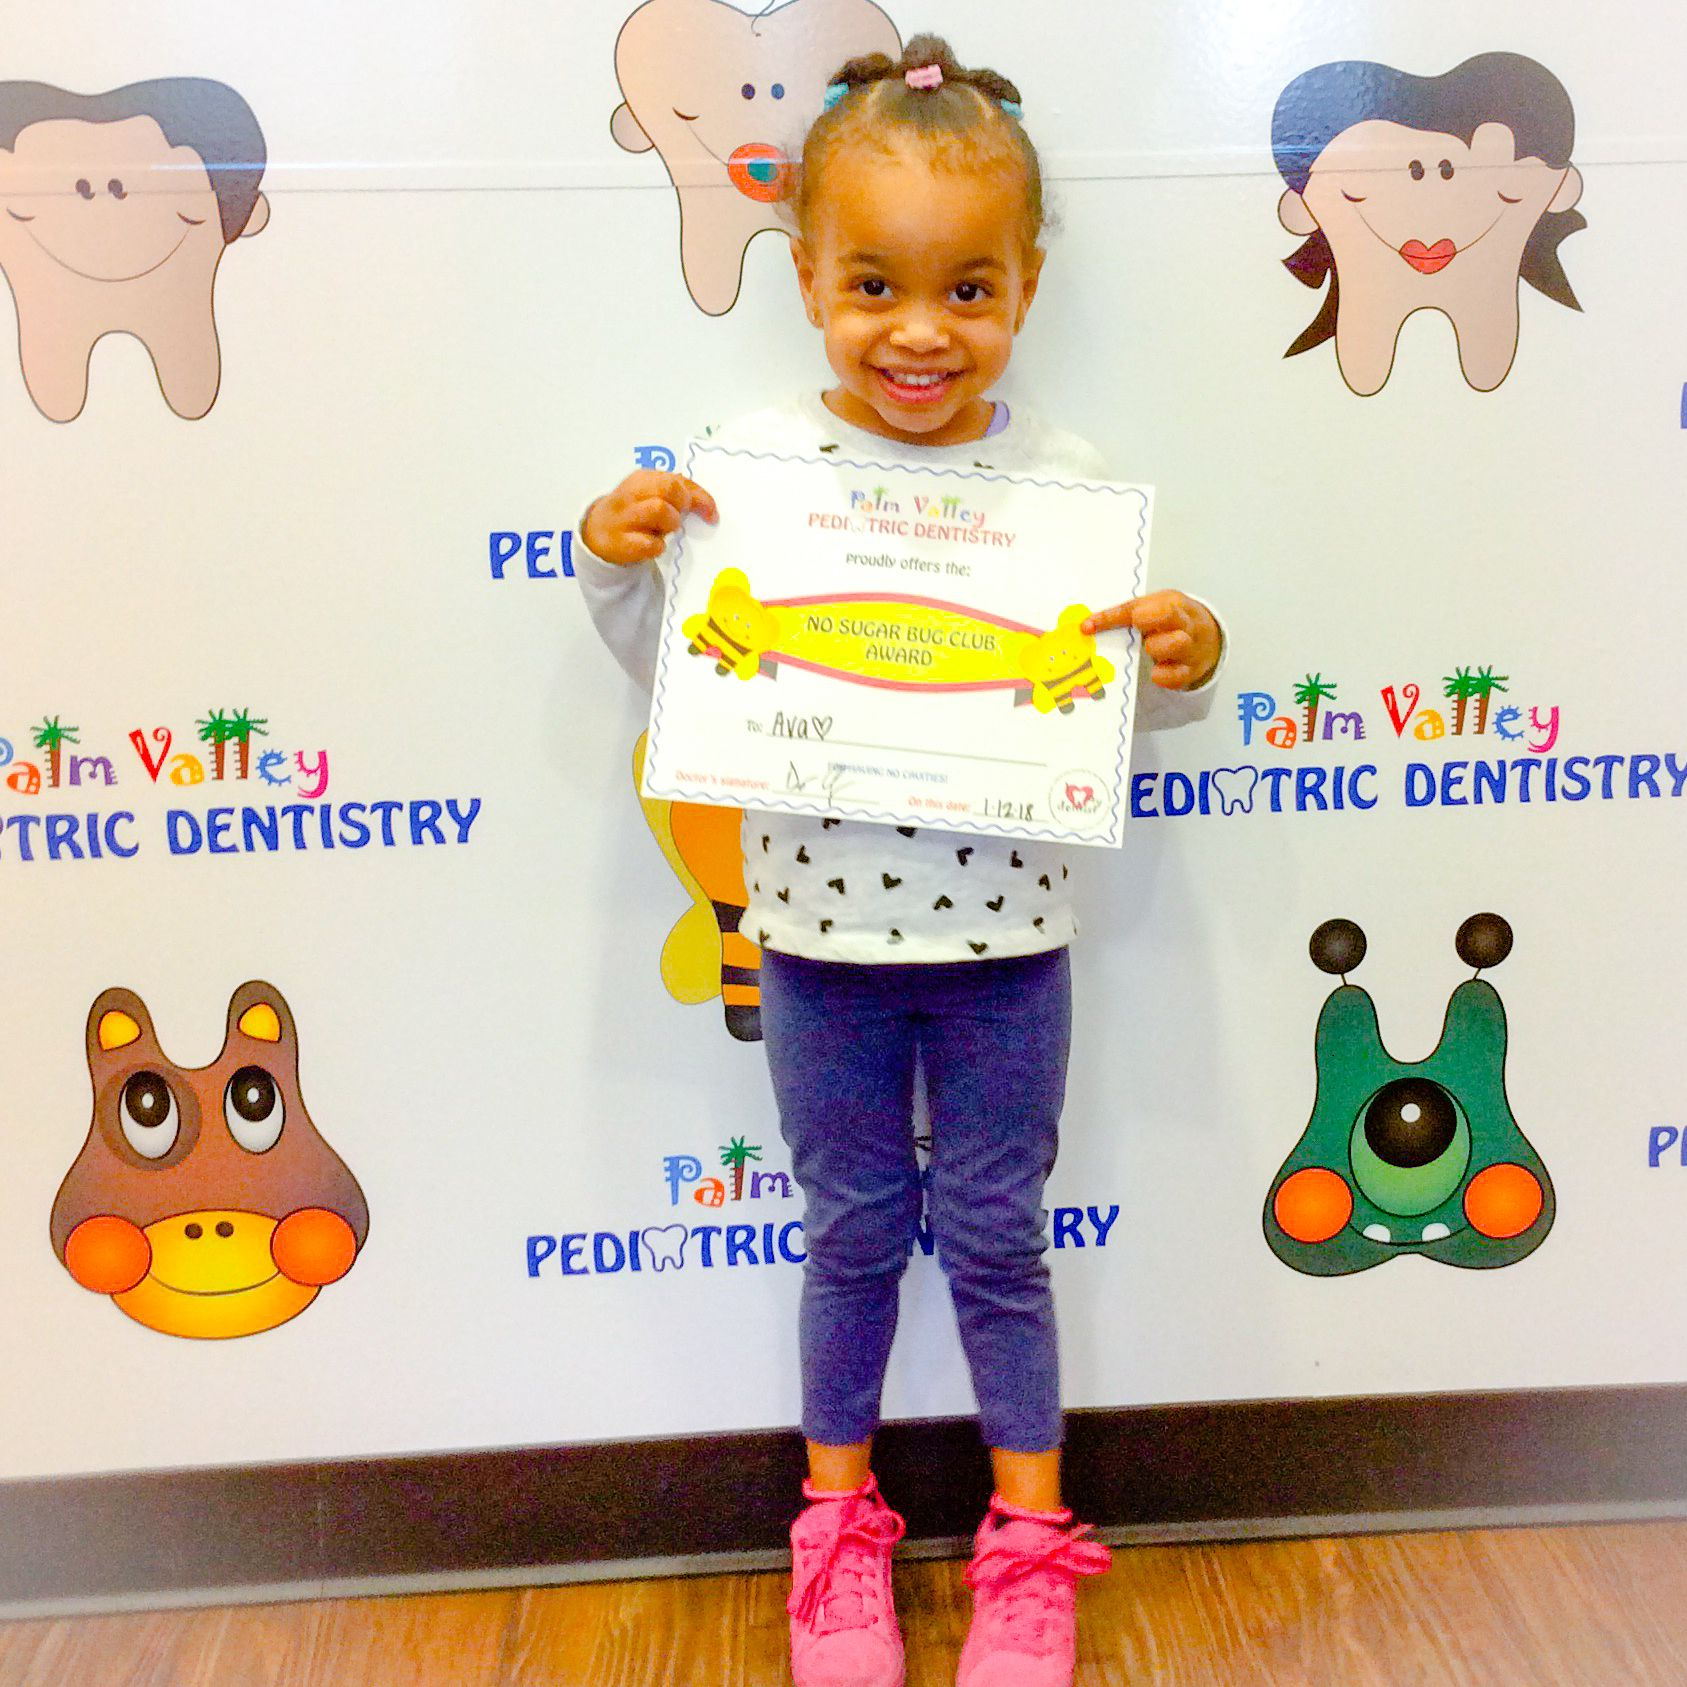 Everyone from our board certified pediatric dentists to